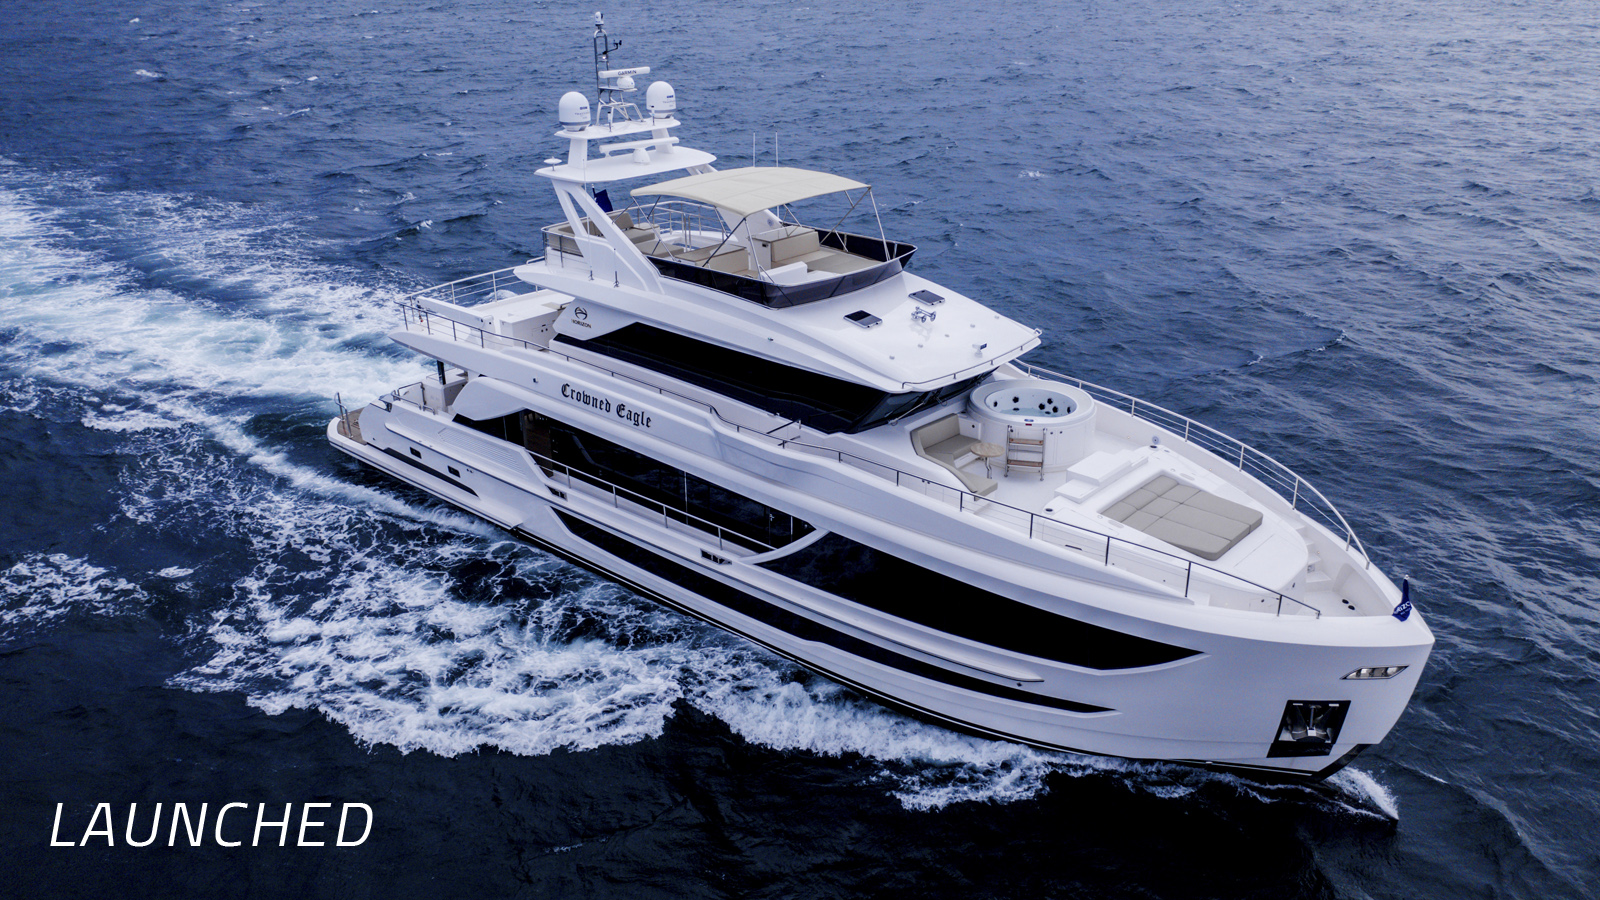 Launched | First FD92 Tri-Deck